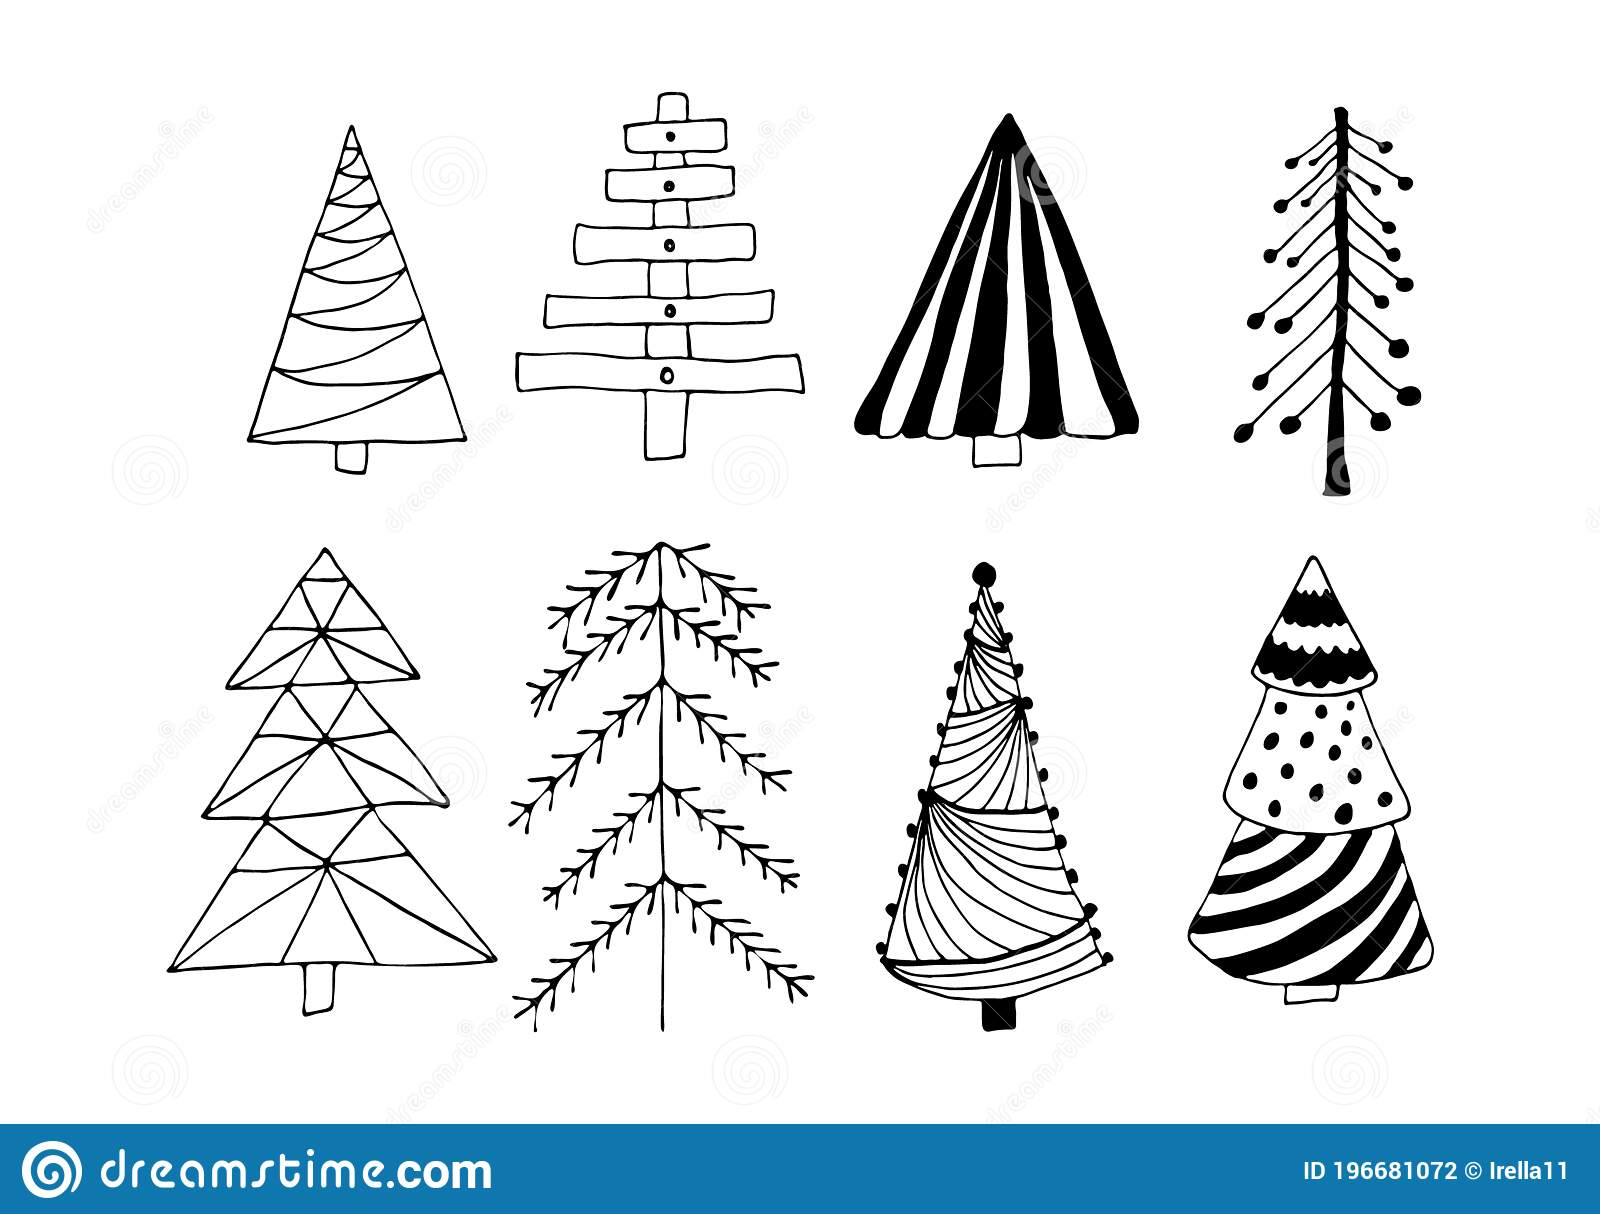 Black Outline Christmas Tree Set Isolated On White Background Winter Holidays Rustic Decor Doodles Vector Illustration For Cards Stock Vector Illustration Of Object Forest 196681072